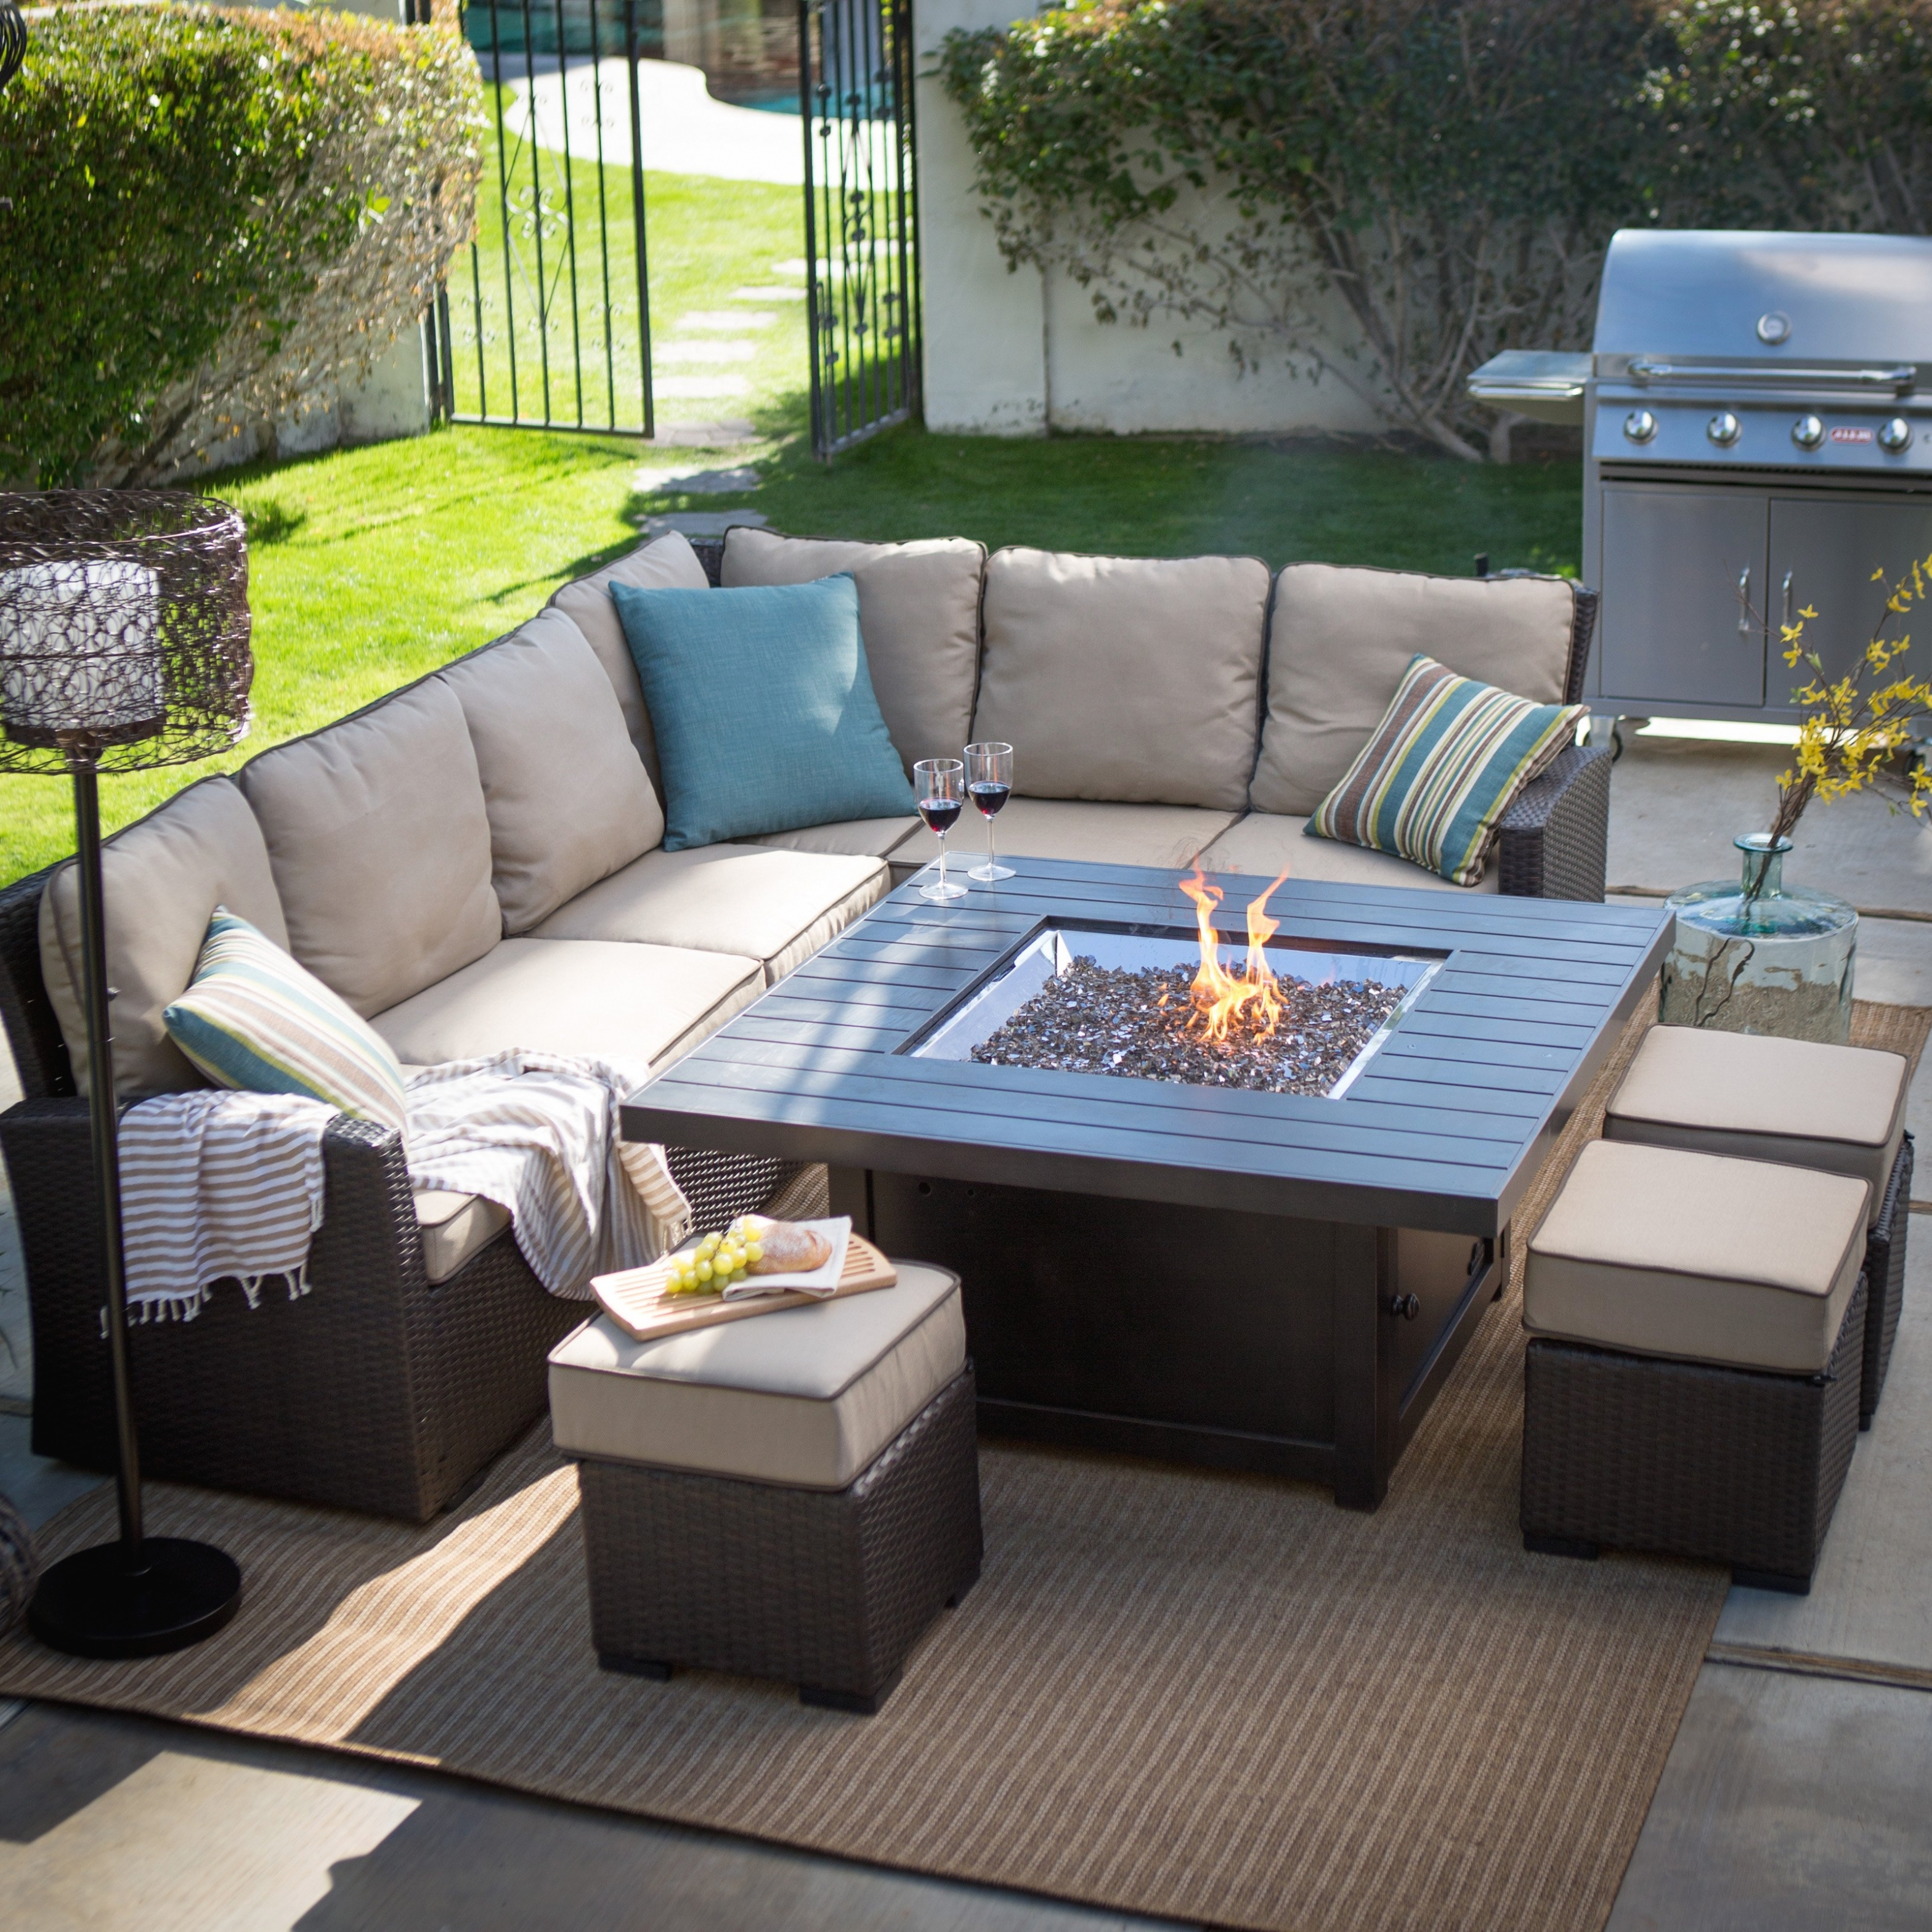 Revisited Fire Pit Conversation Sets Shrewd Patio Furniture Decor Within 2018 Patio Conversation Sets With Fire Table (View 11 of 15)